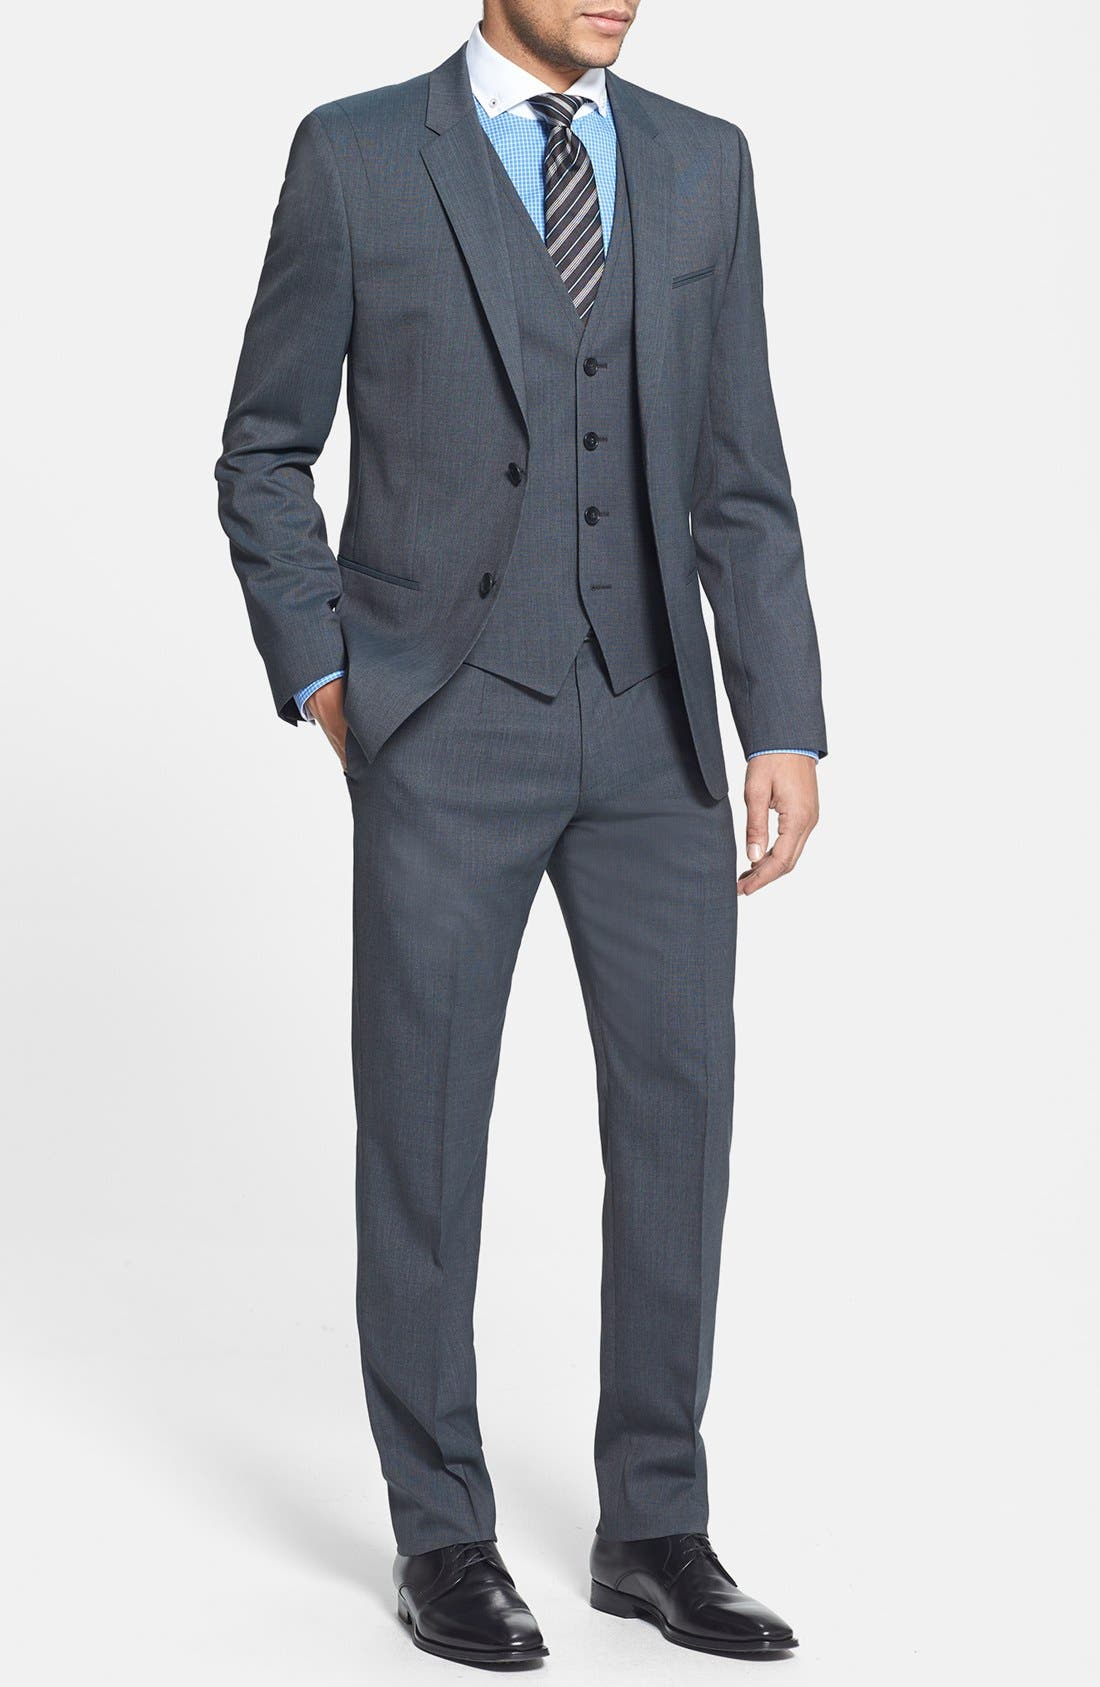 Alternate Image 1 Selected - HUGO 'Arant/Won/Hixby' Extra Trim Fit Three-Piece Suit